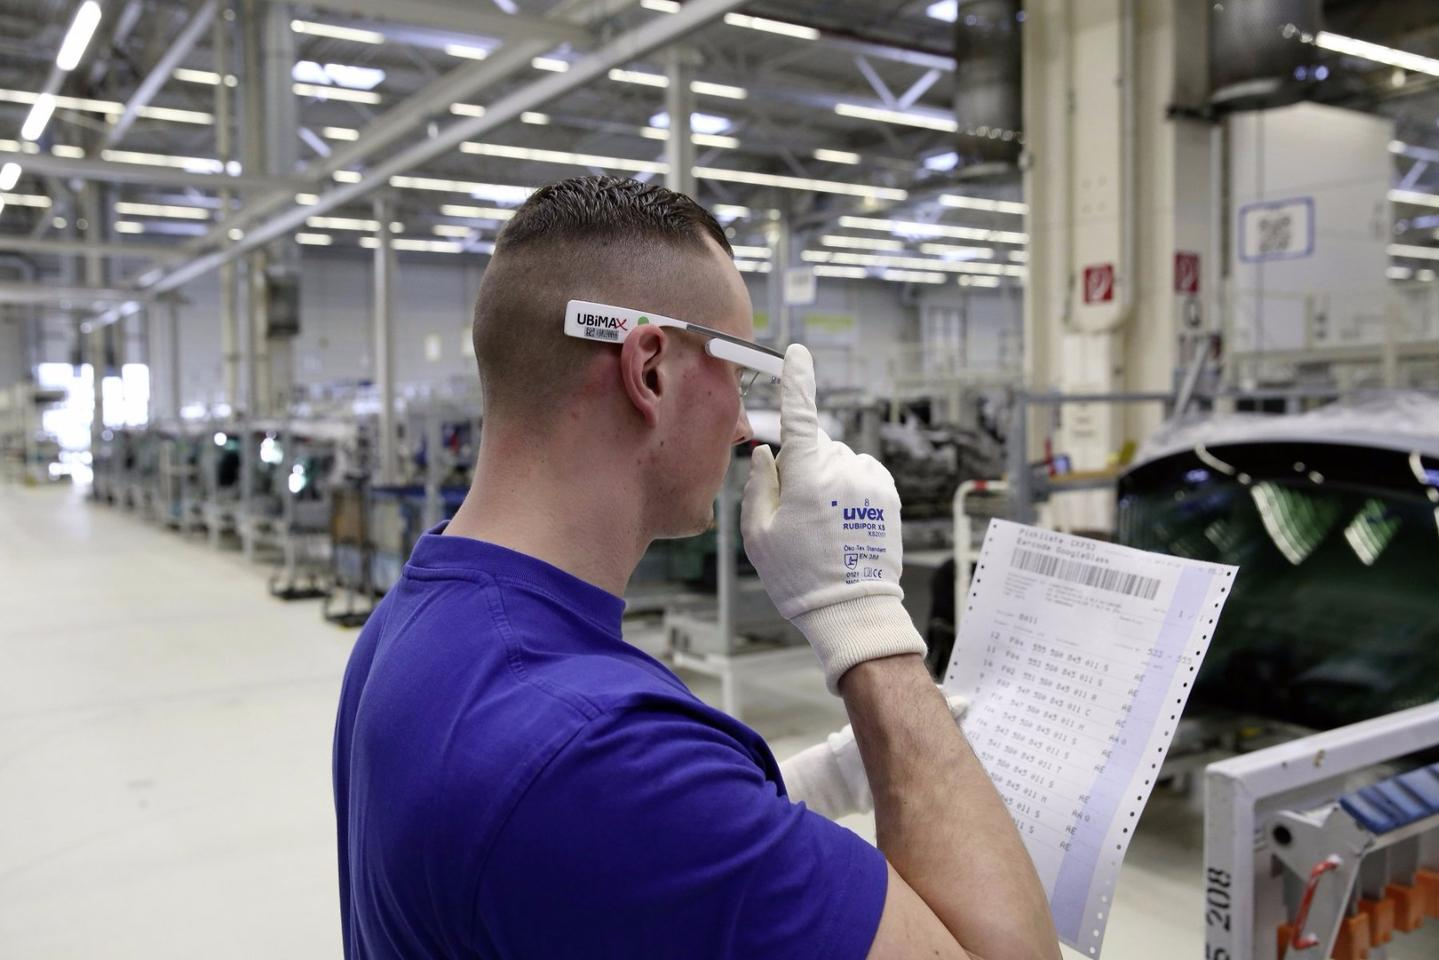 The glasses present relevant information within the user's field of vision, and have an integrated barcode reader that identifies whether or not the correct parts have been taken from storage locations